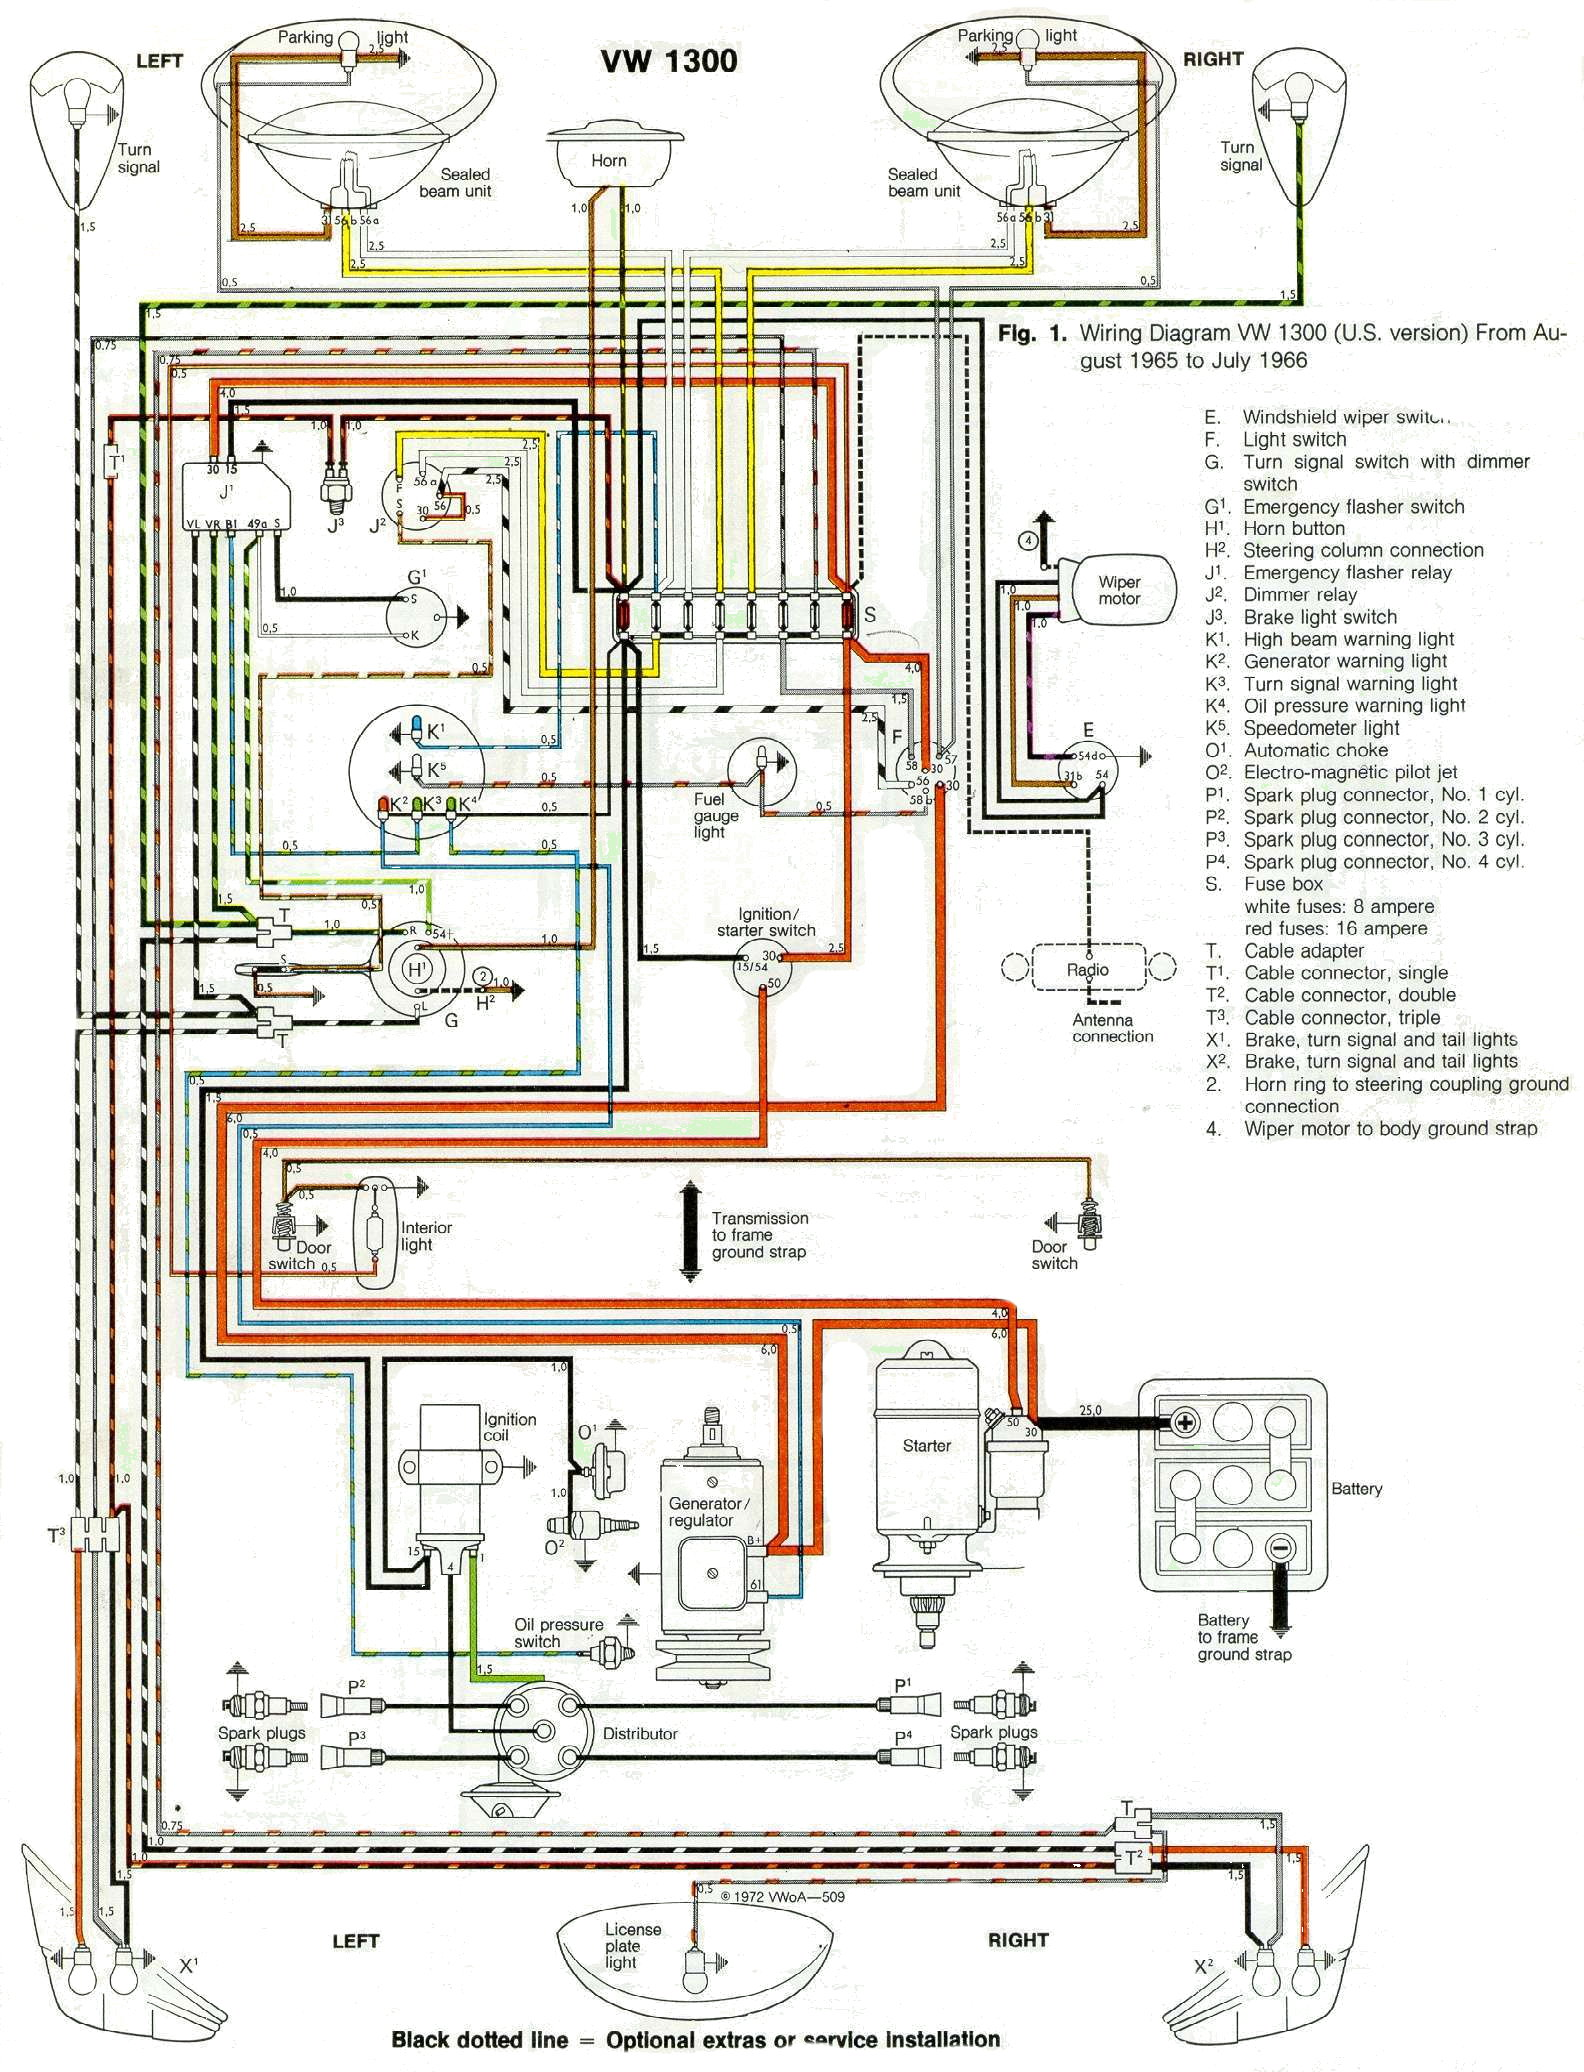 1966 wiring diagram 1971 vw super beetle wiring diagram the site for 1966 vw beetle owners and fans!